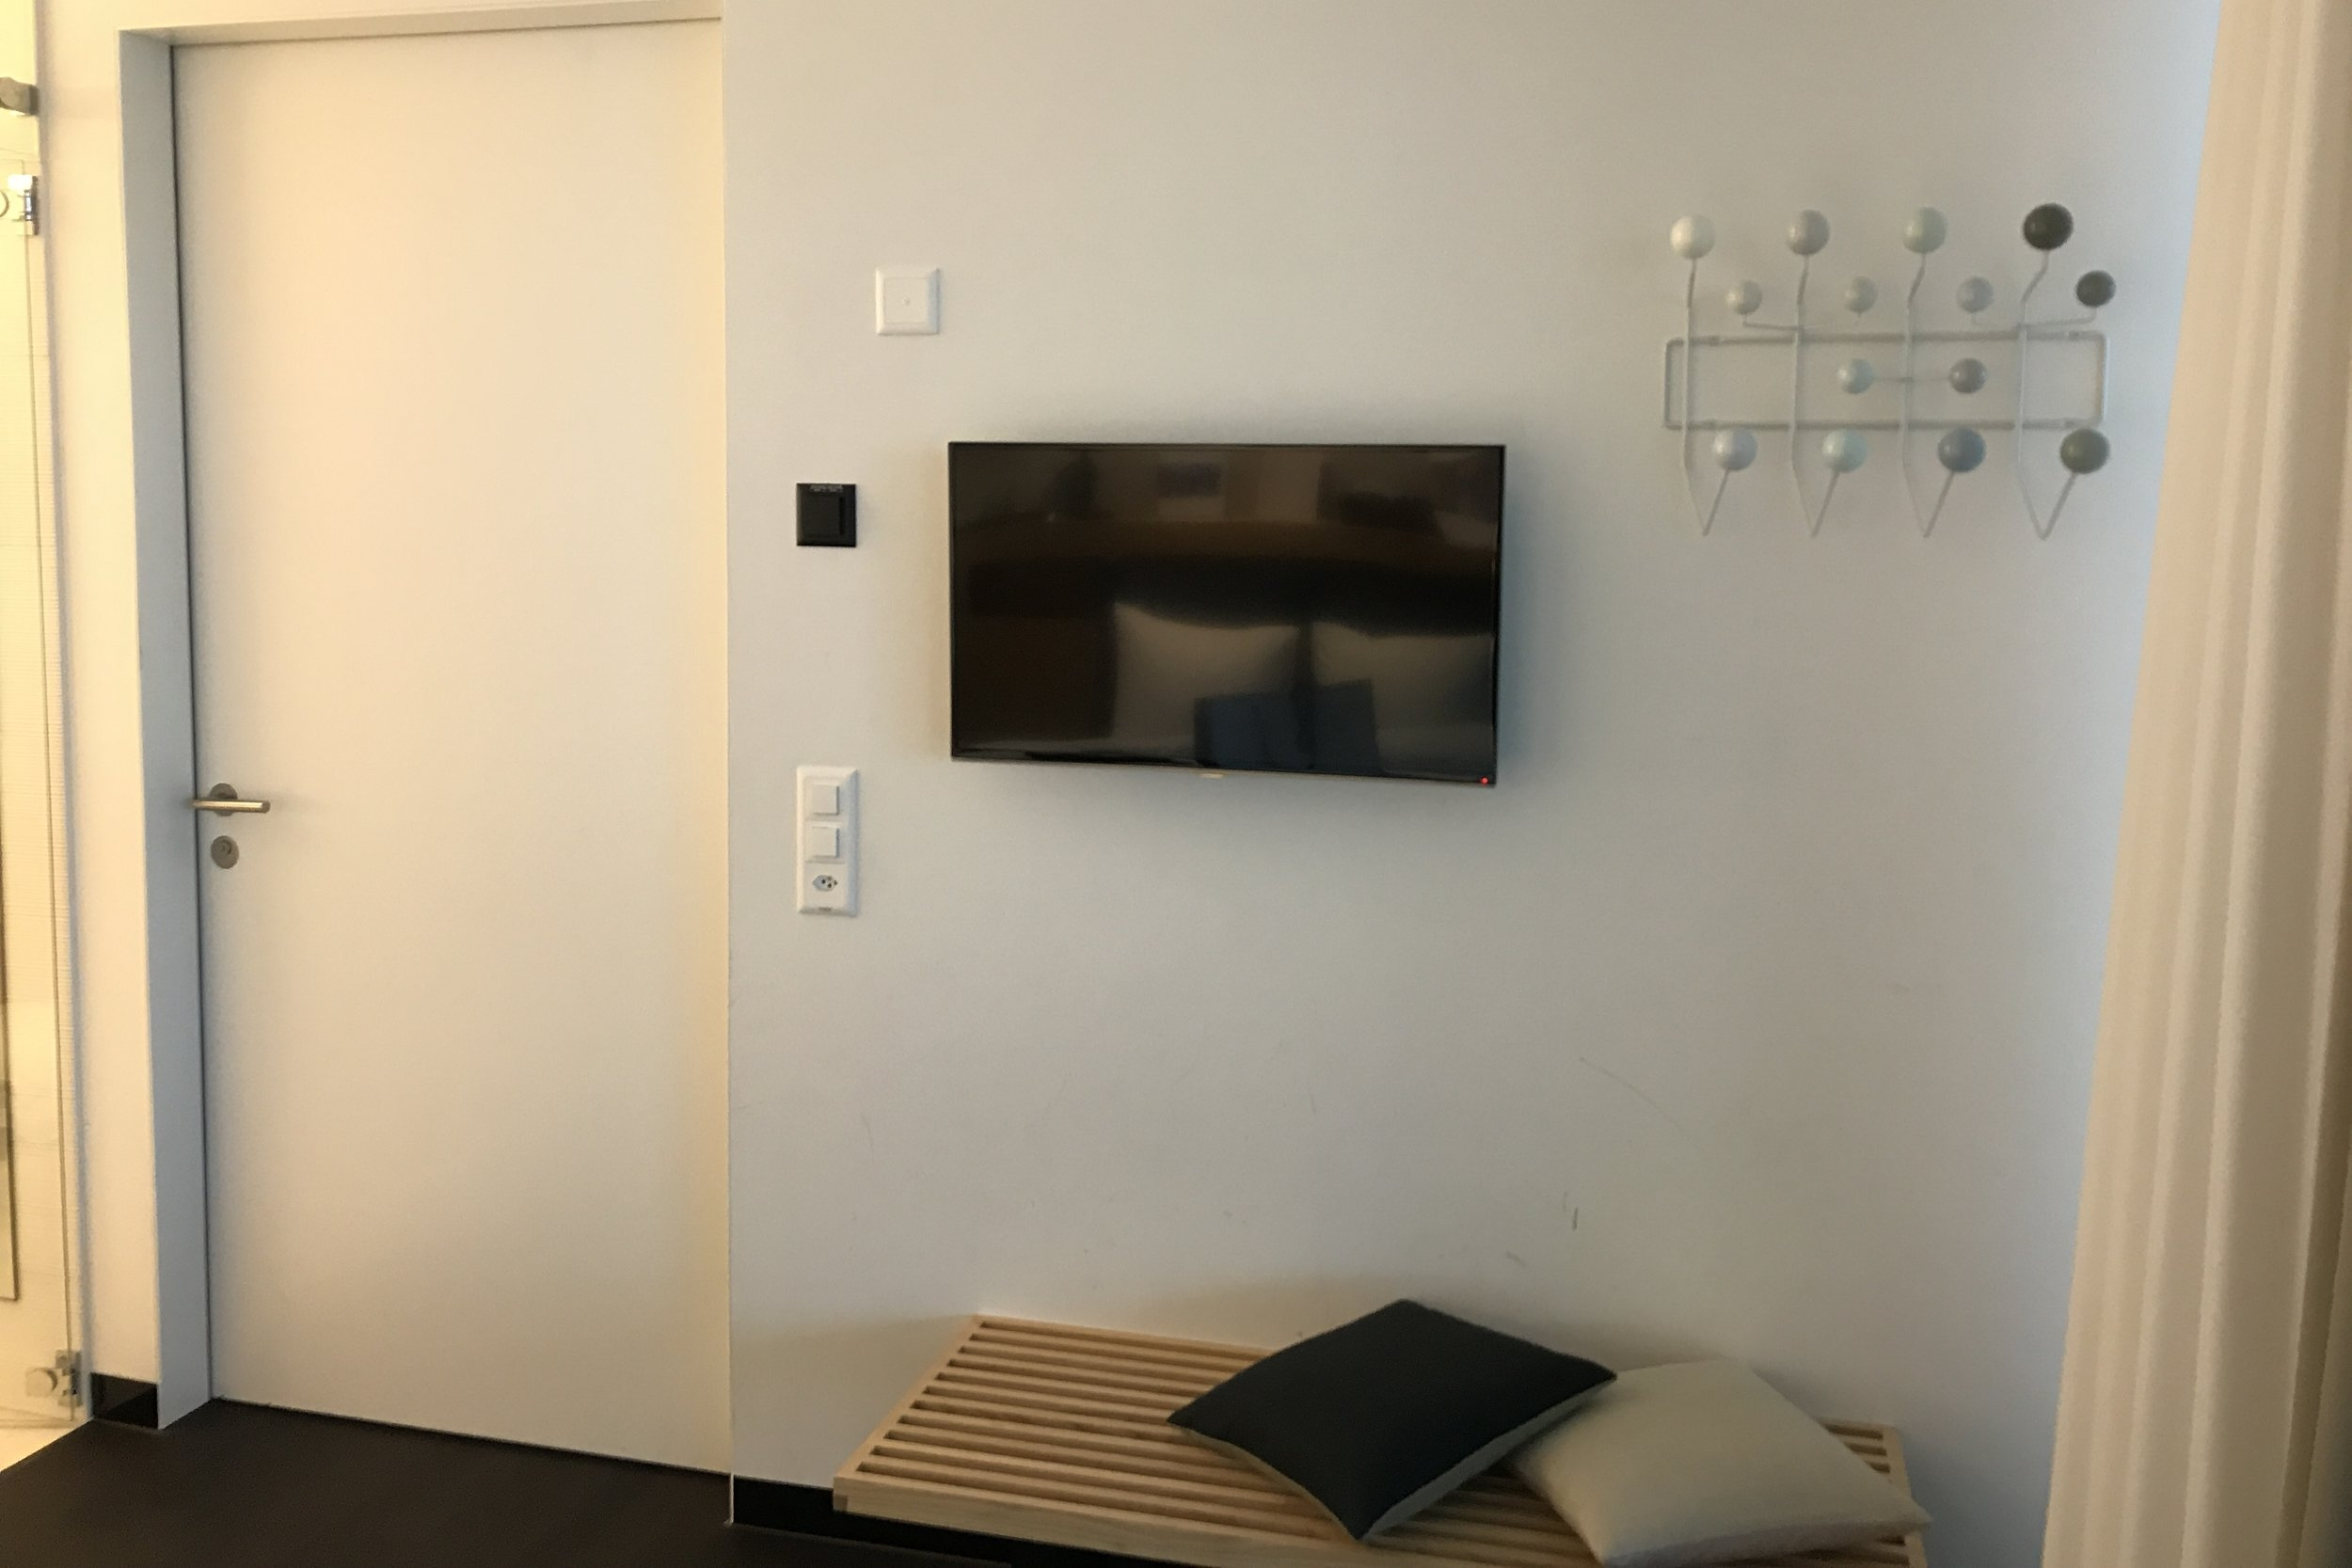 Swiss First Class Lounge Zurich – Day room luggage rack and TV